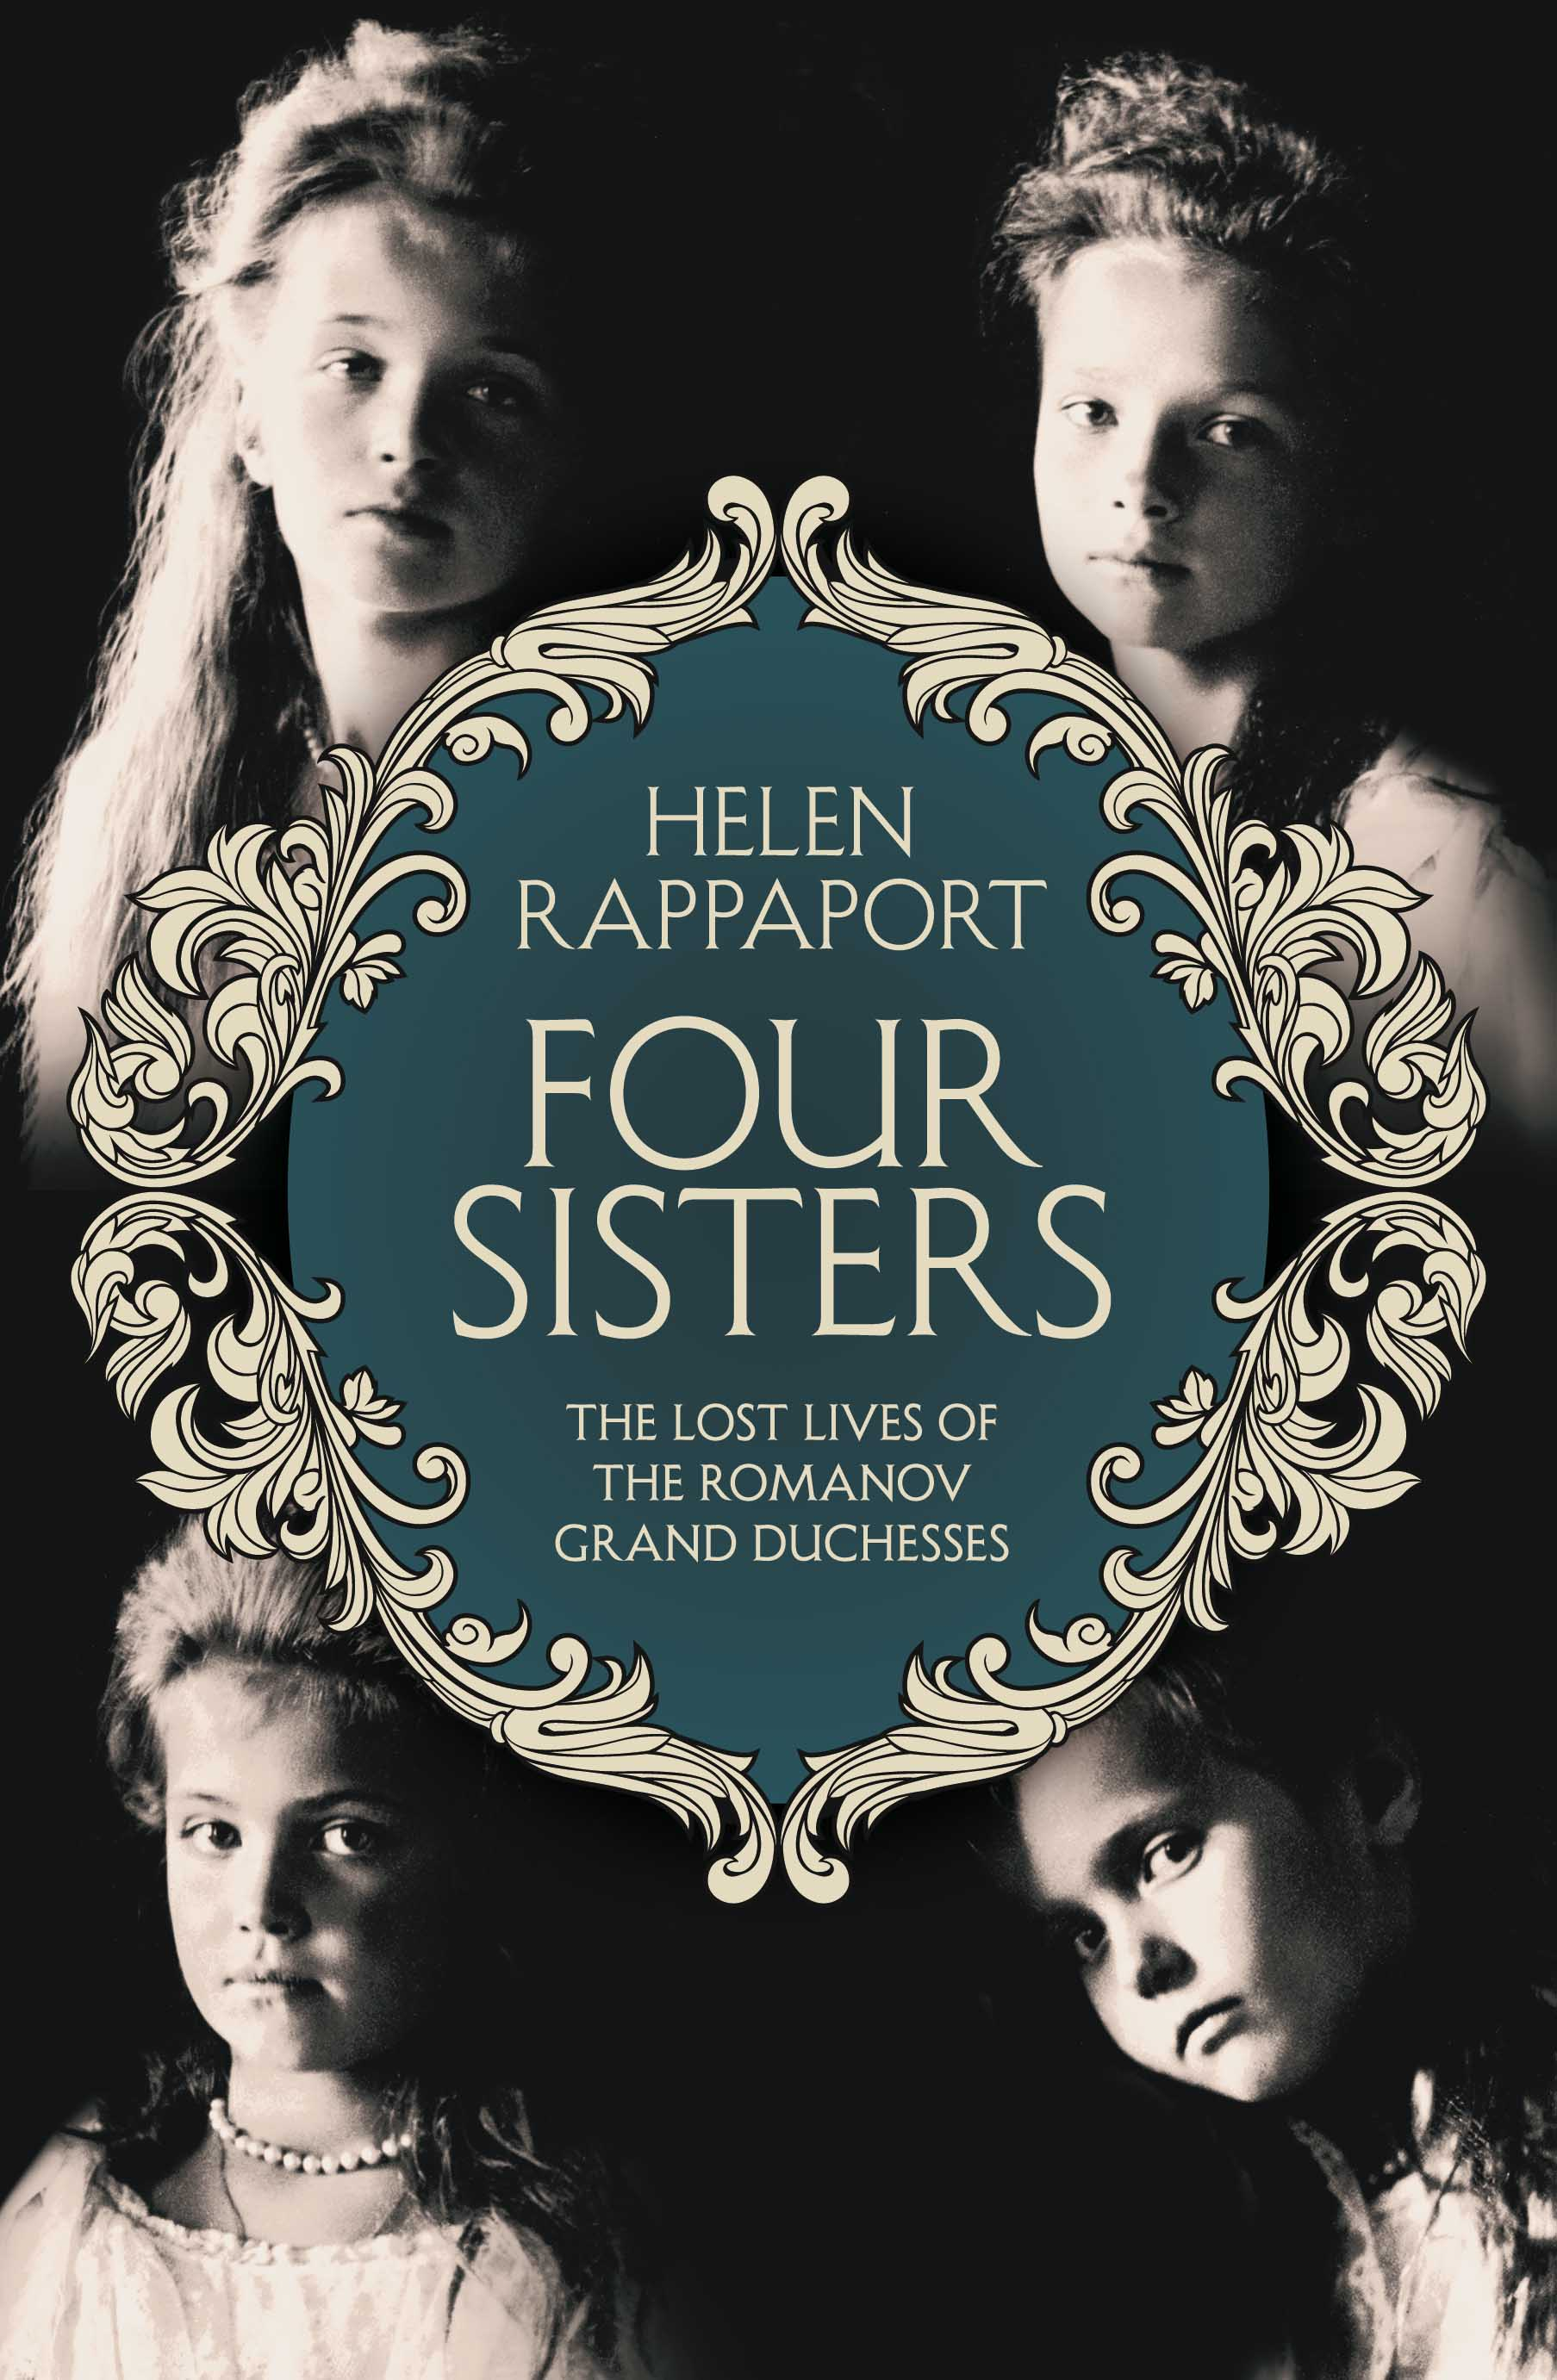 Four Sisters: Helen Rappaport on Synergies & Gaps Between